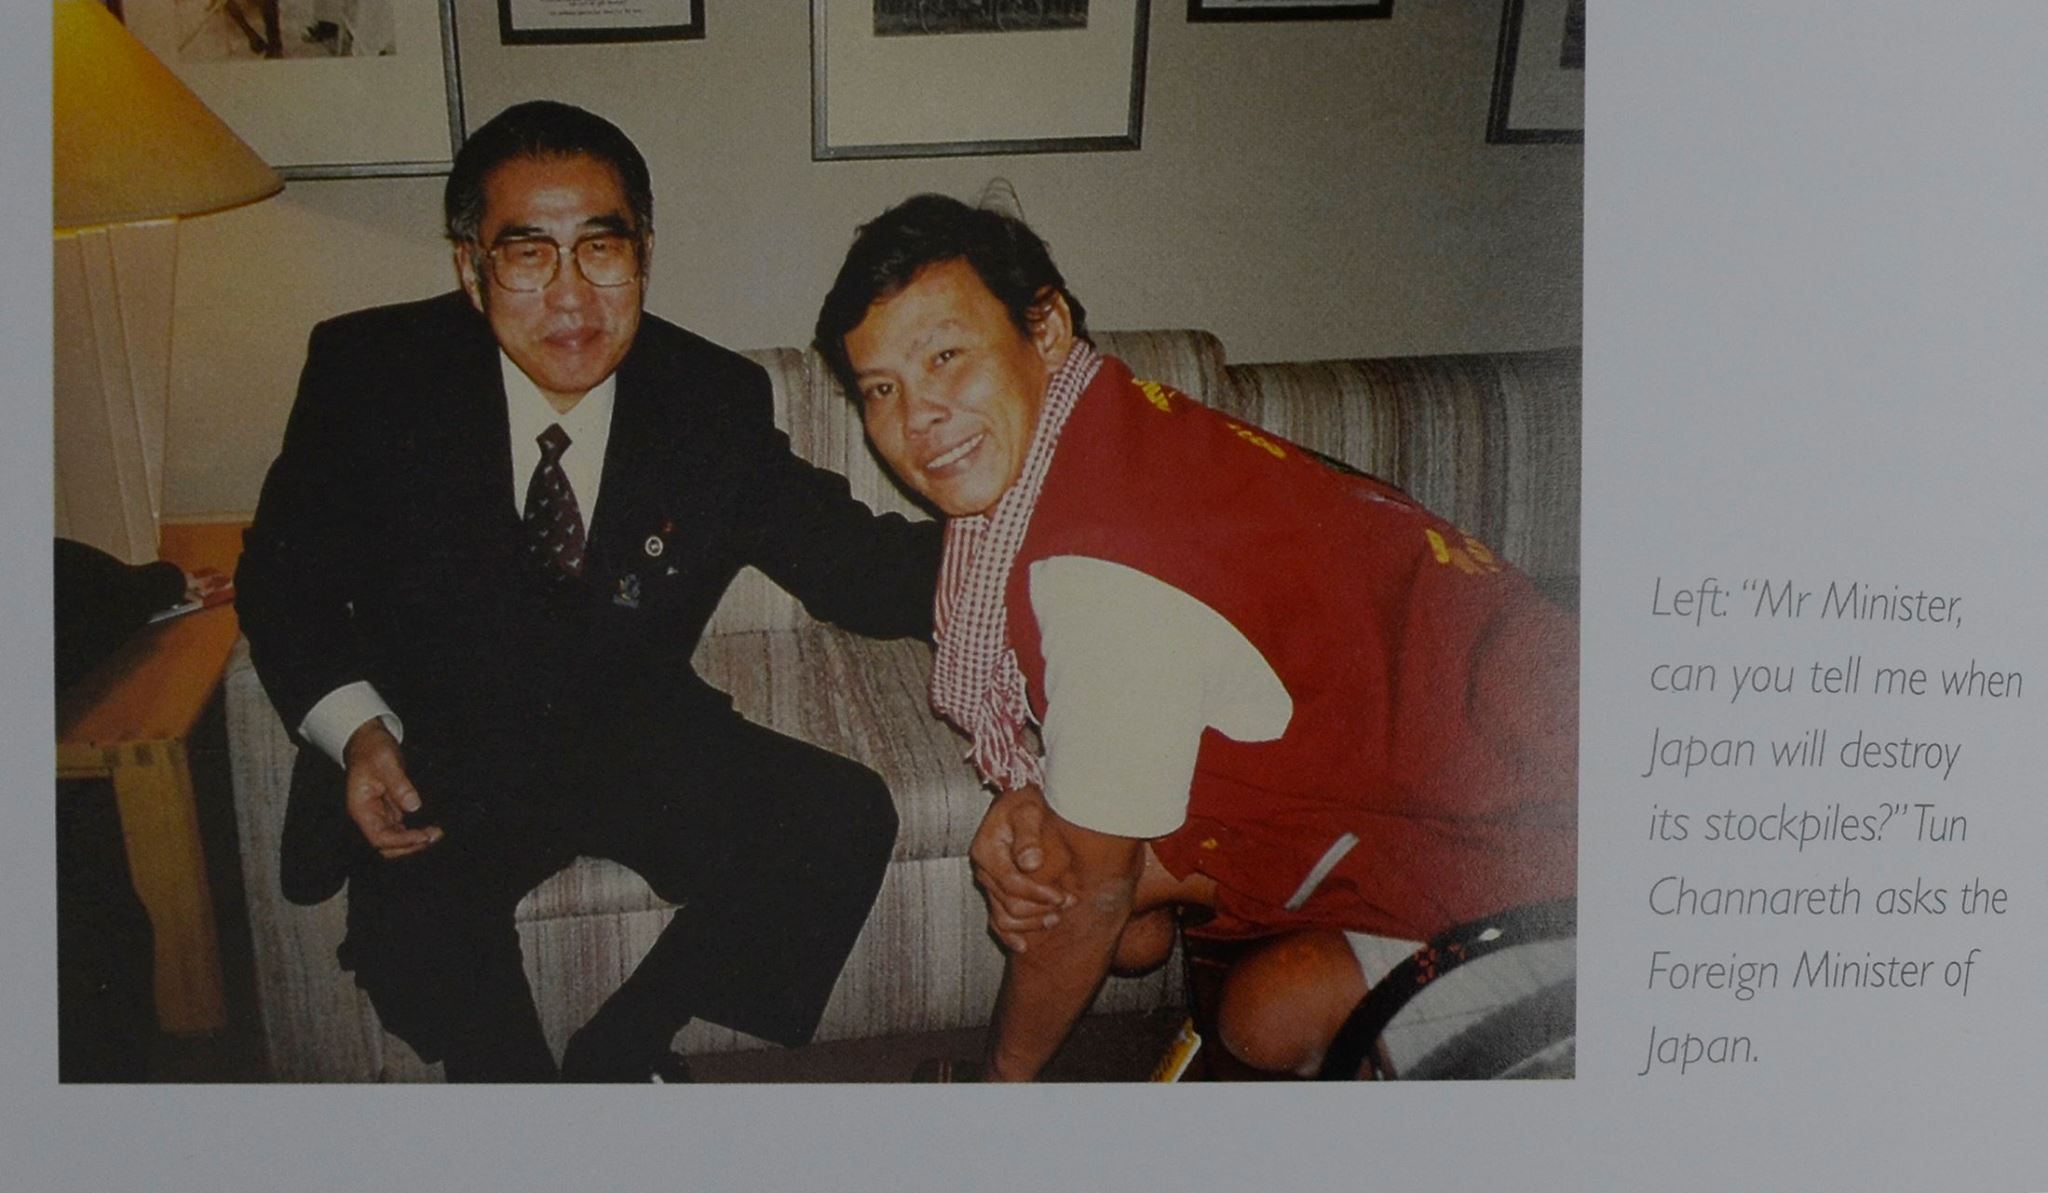 Tun Channareth and Foreign Minister of Japan